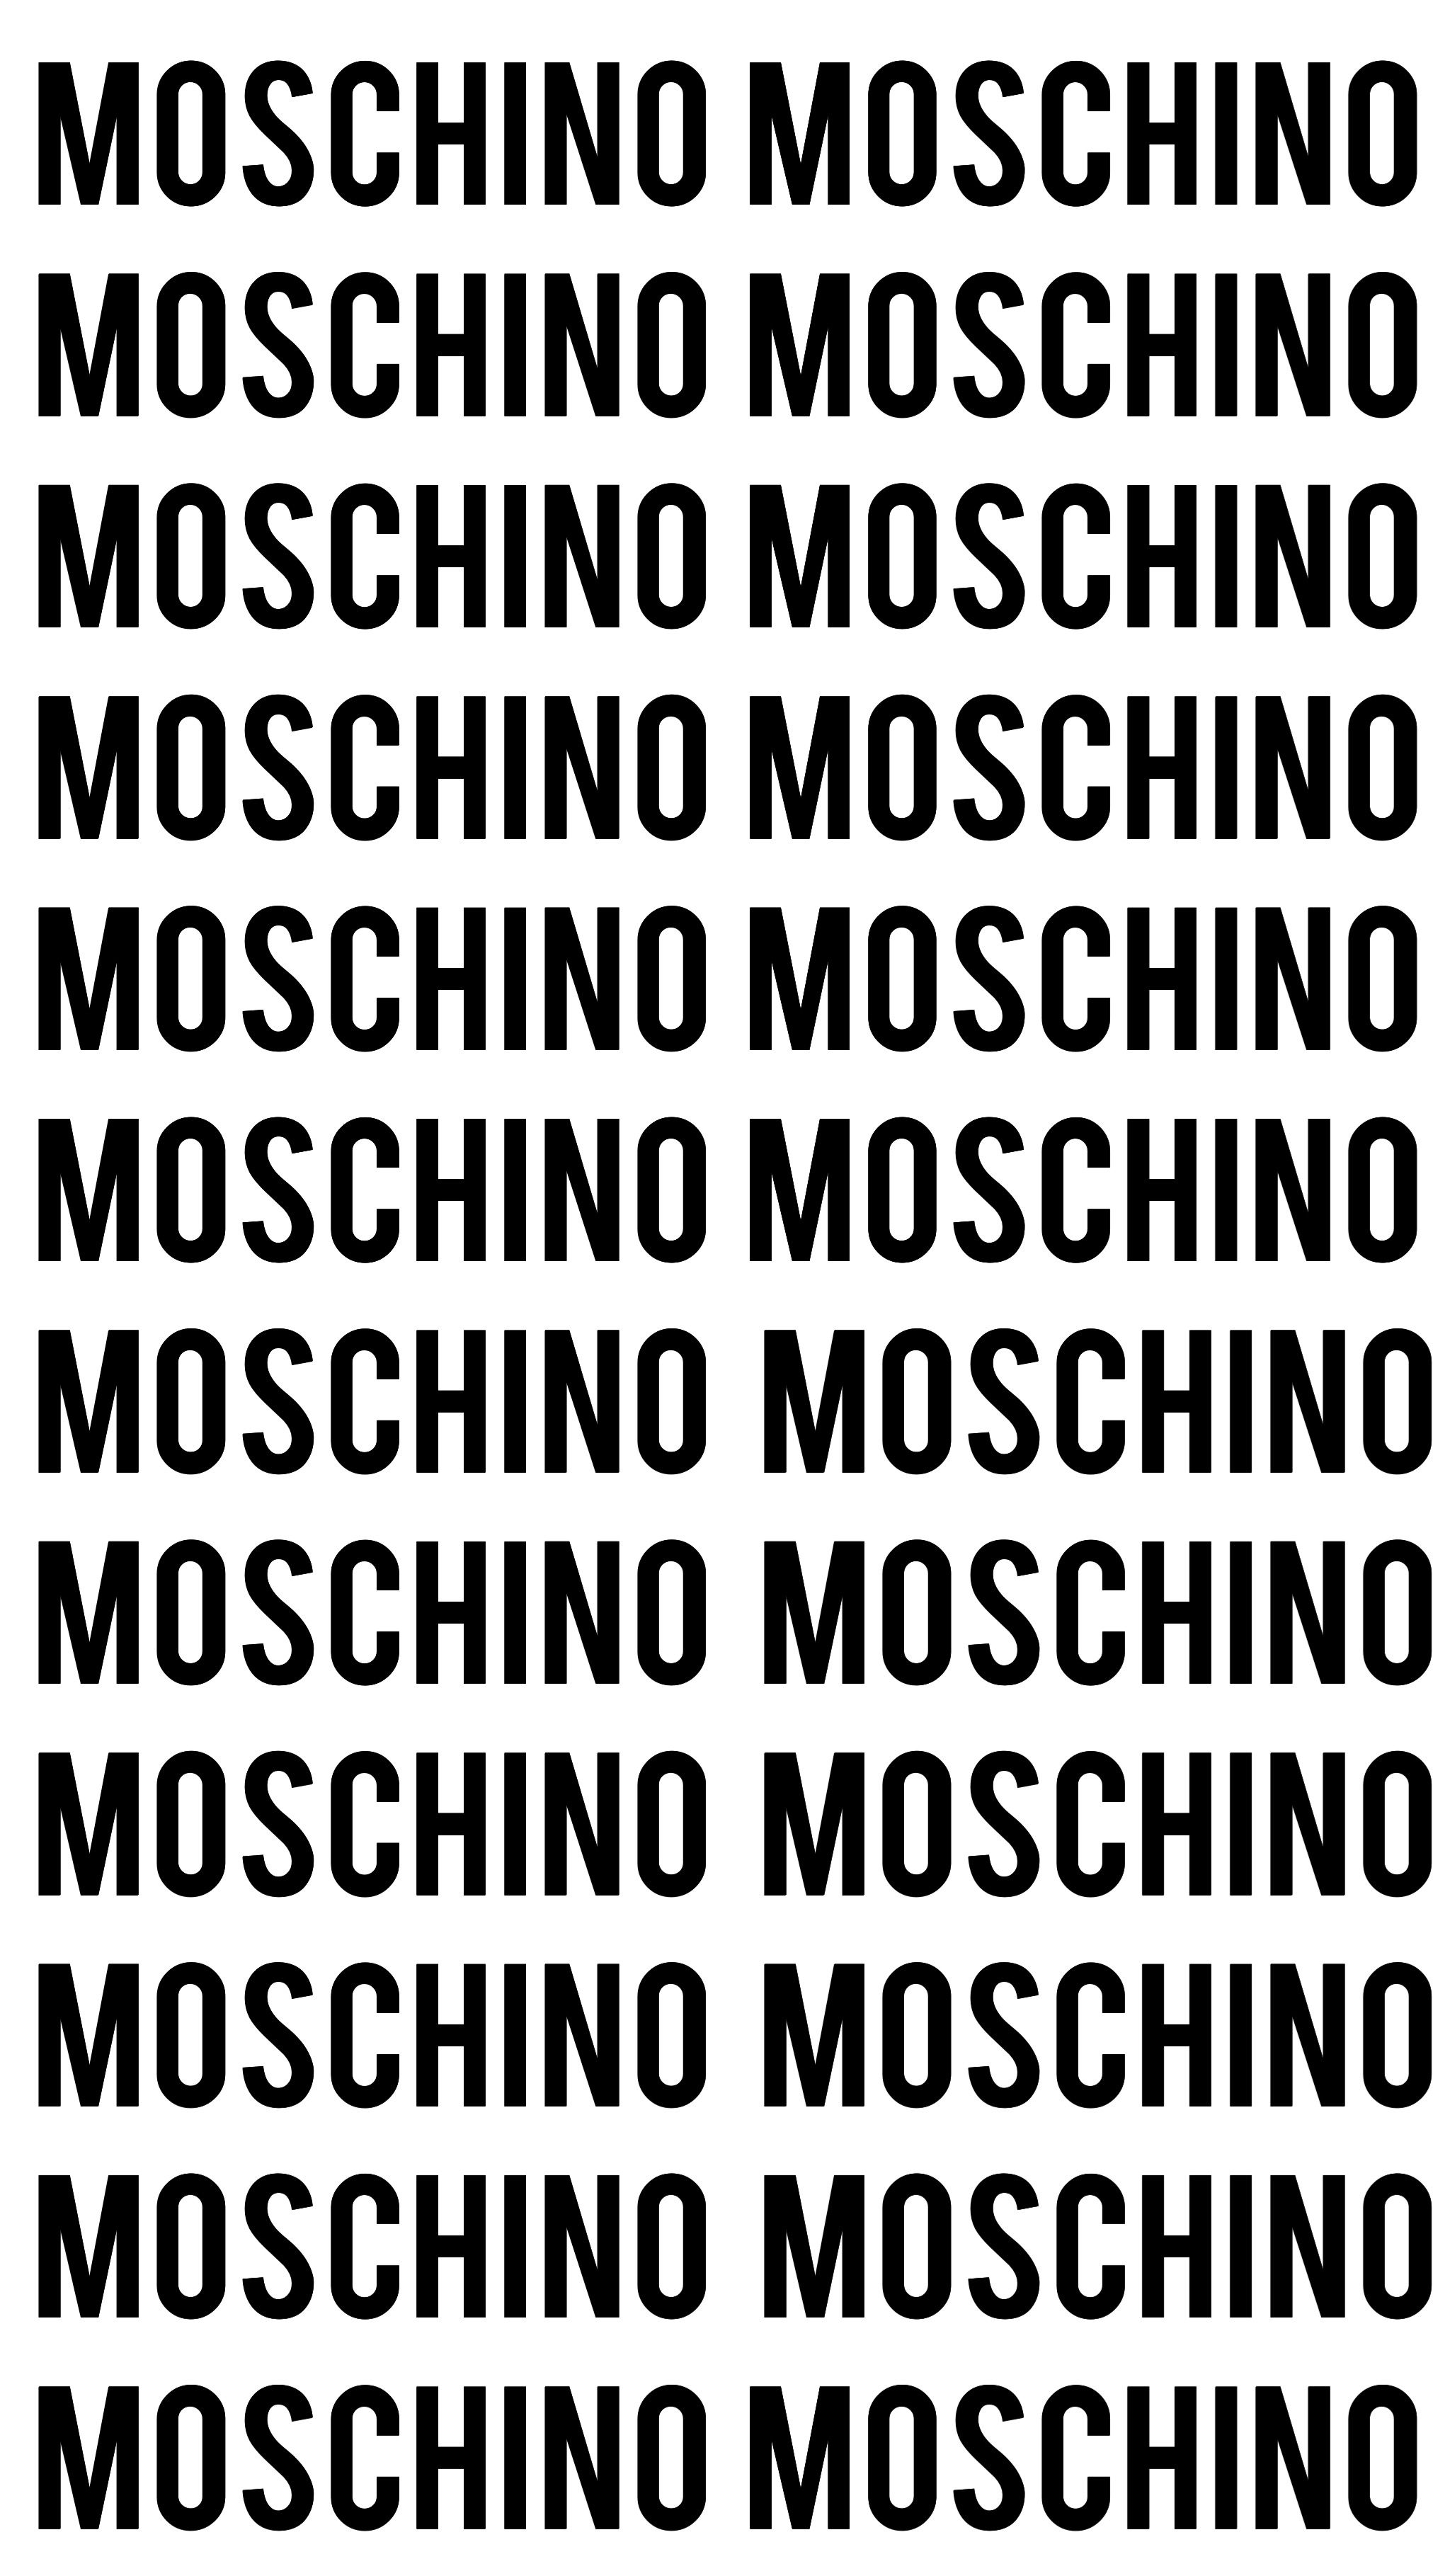 Moschino wallpaper Moschino in 2019 Hypebeast wallpaper 2048x3638